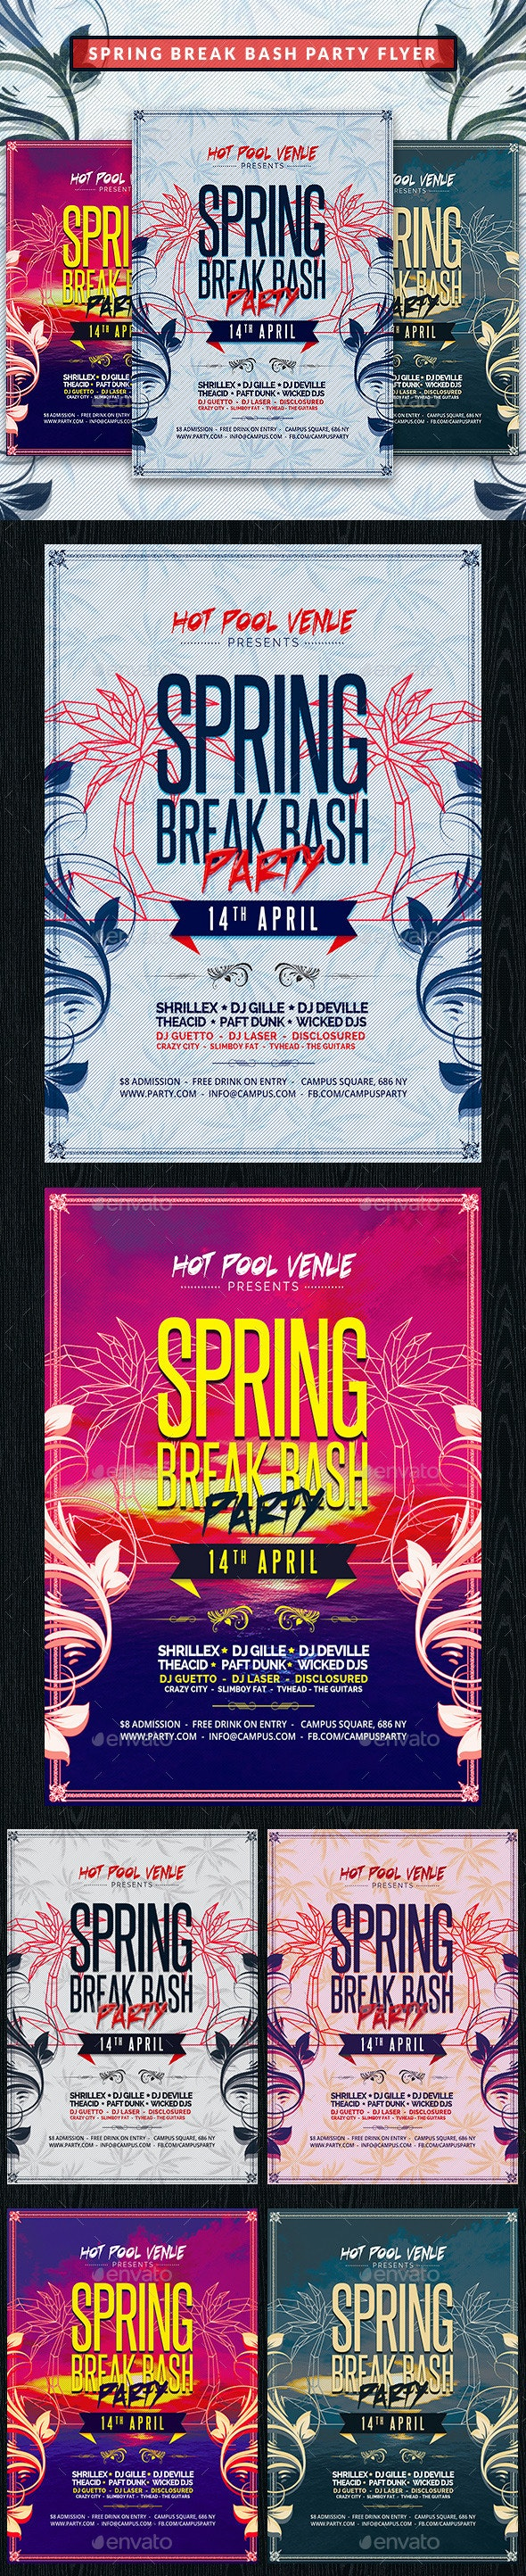 Spring Break Bash Party Flyer - Clubs & Parties Events